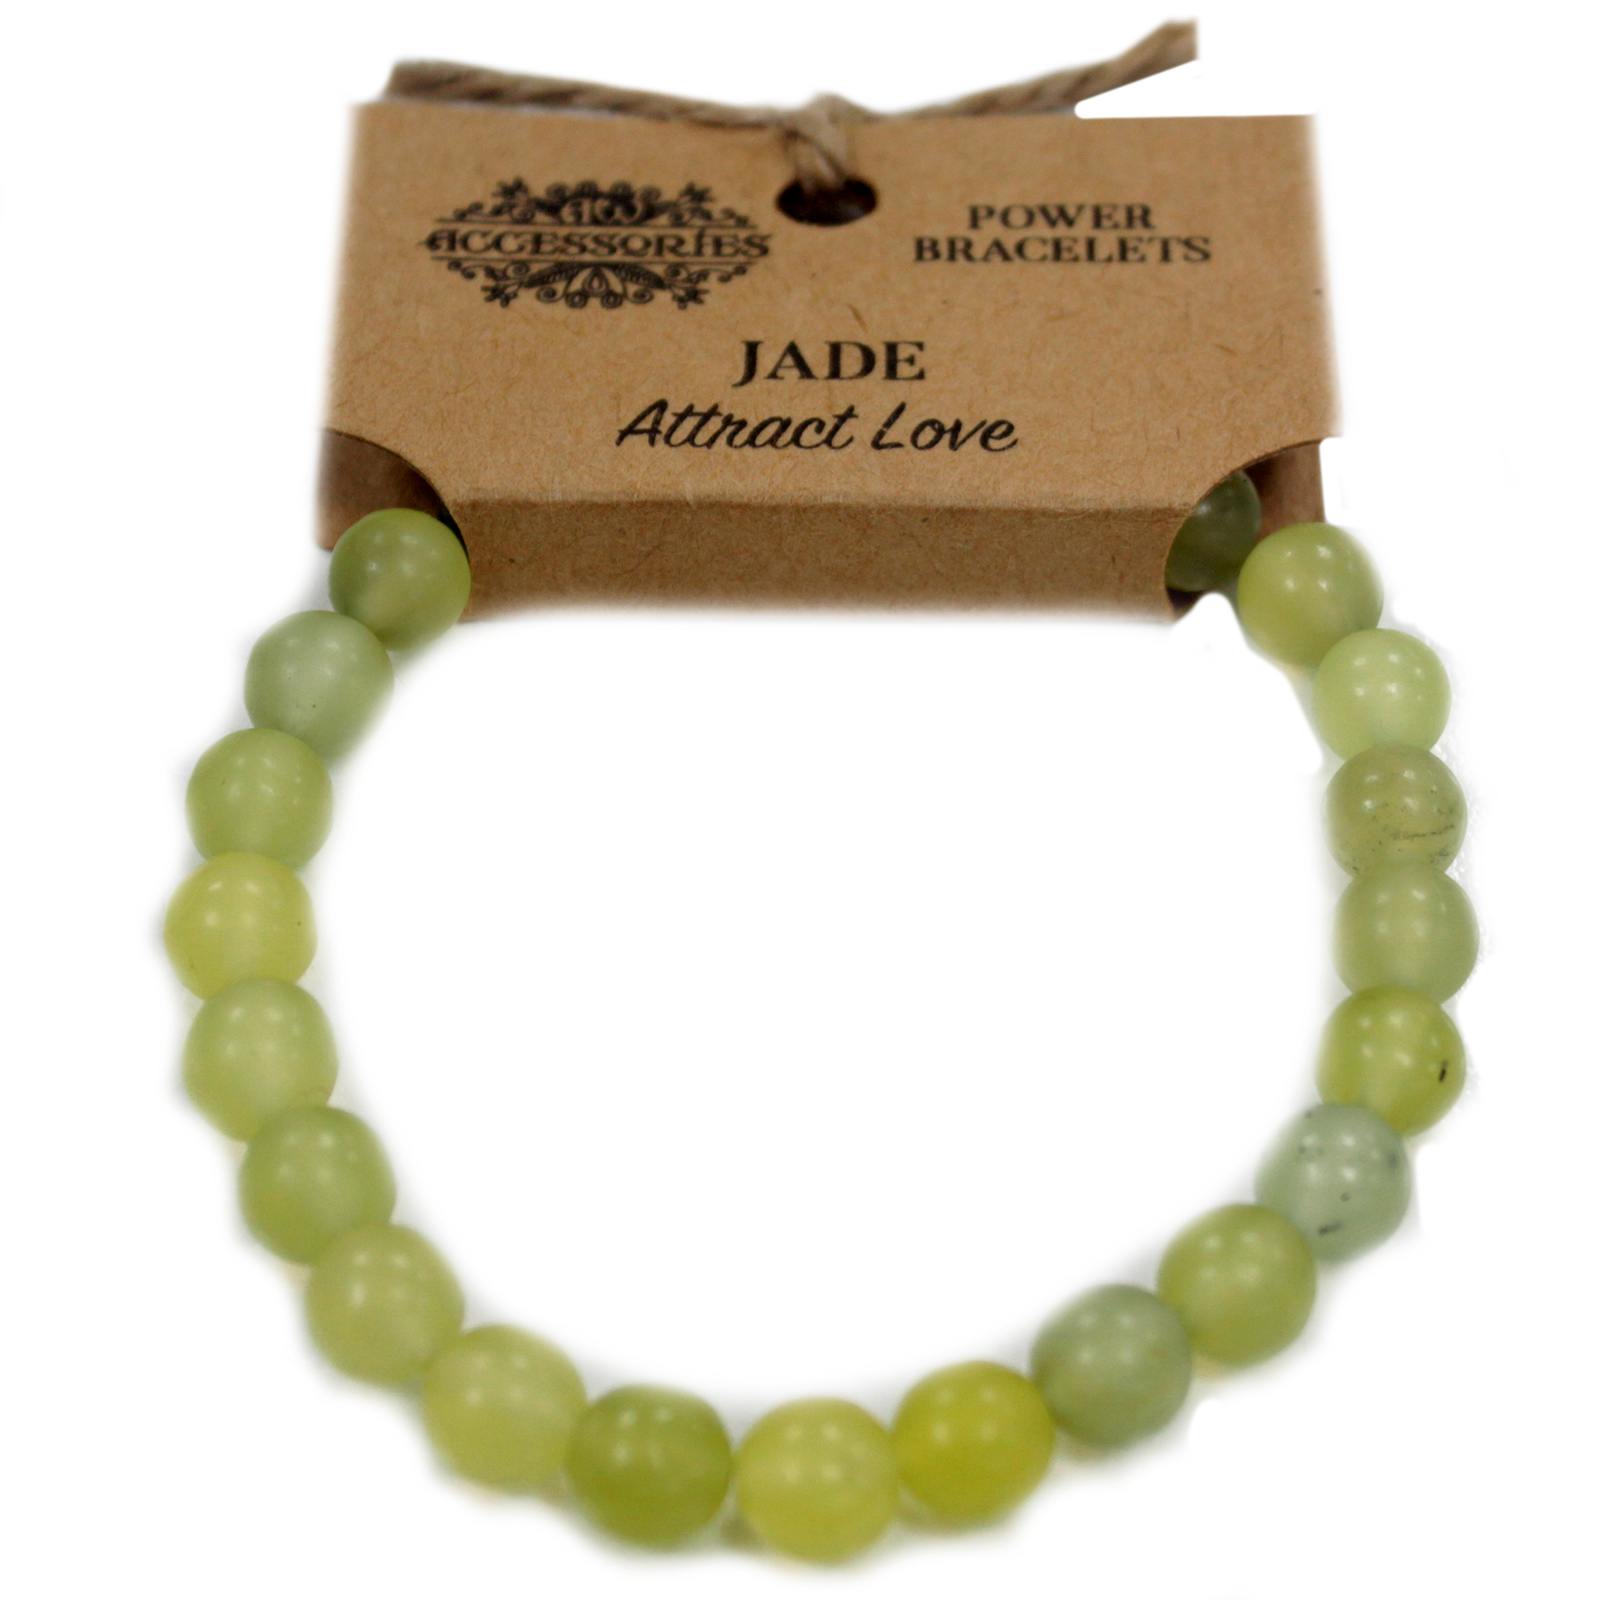 Power Bracelet - Jade